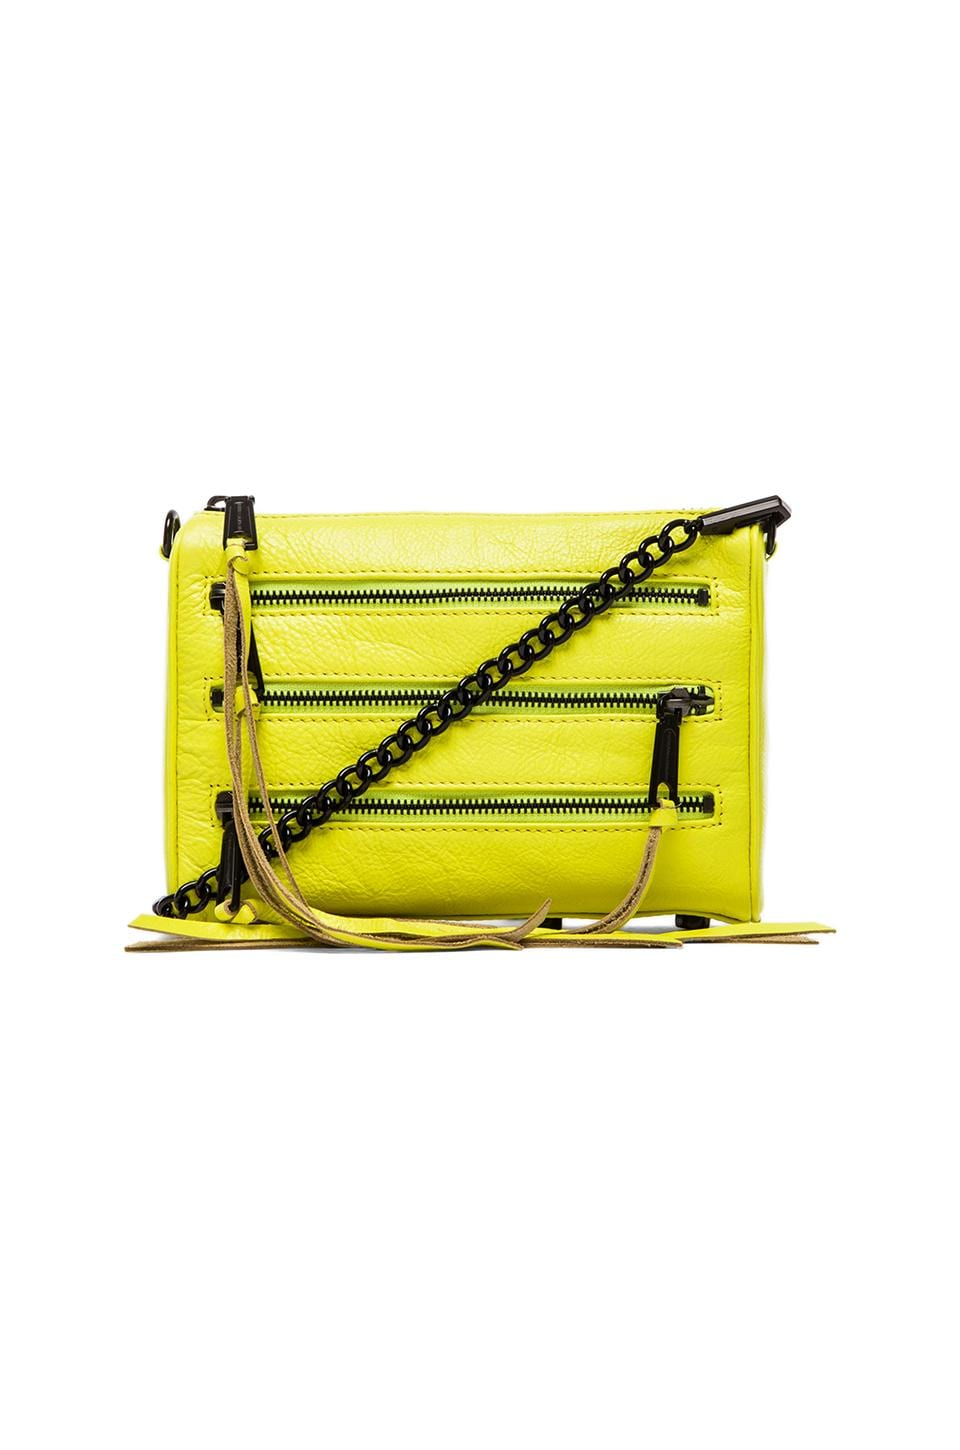 Rebecca Minkoff Mini 5 Zip in Acid Yellow